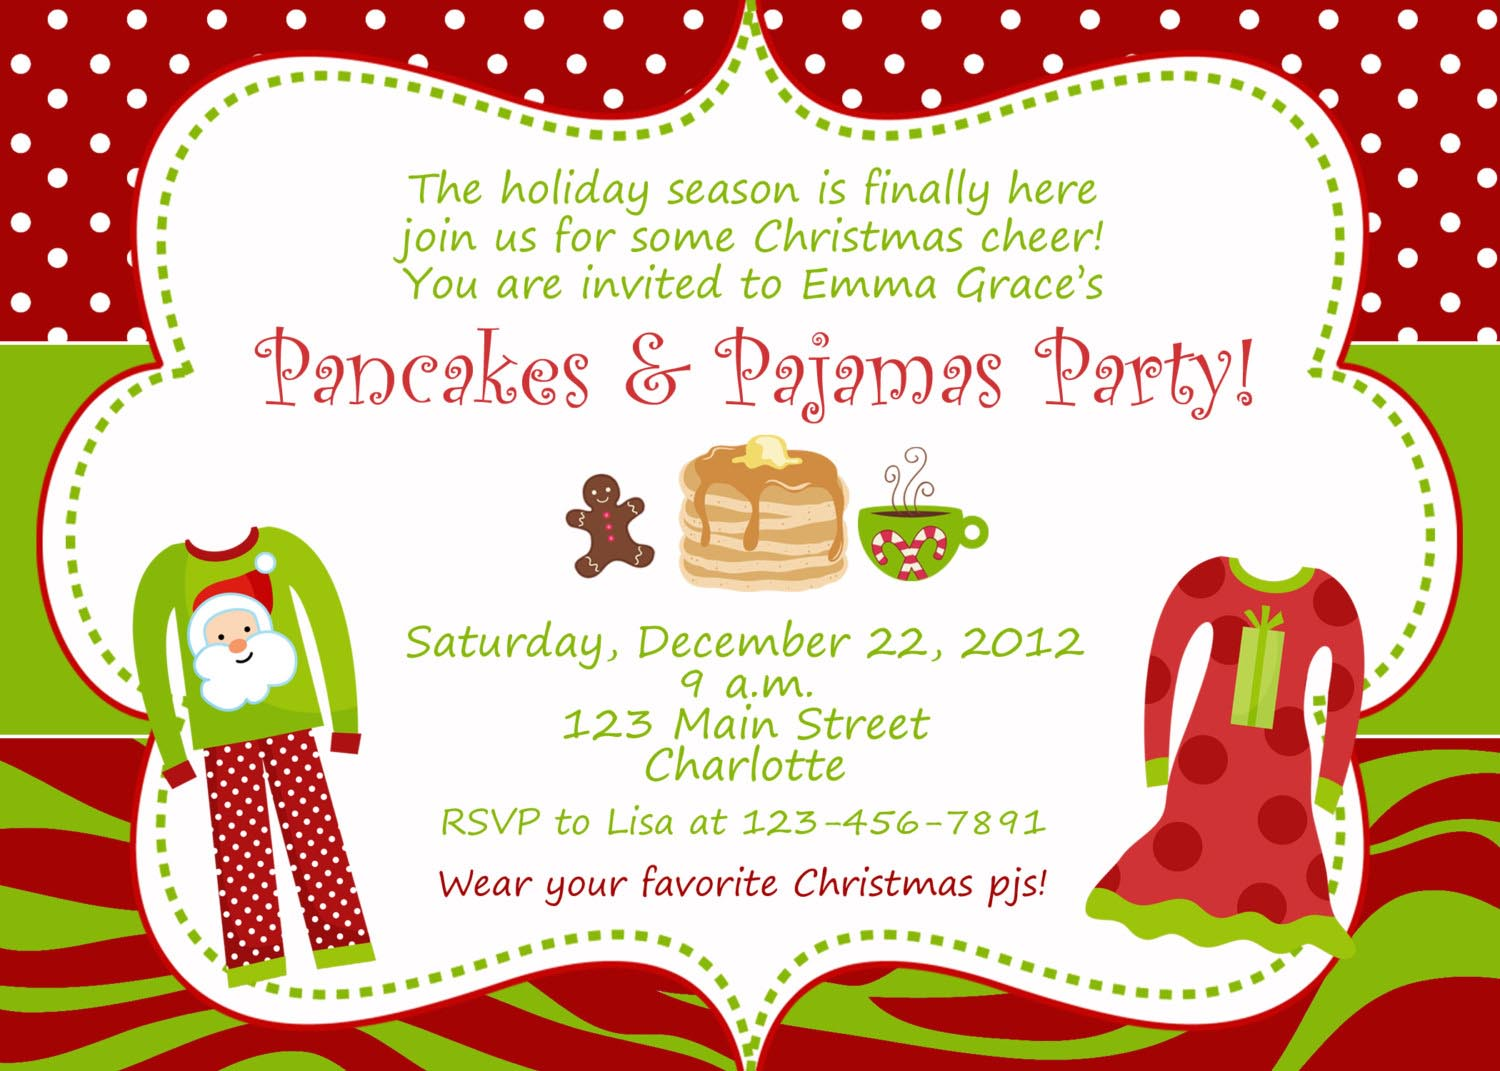 Christmas Party Invitation Wording Gallery - Party Invitations Ideas